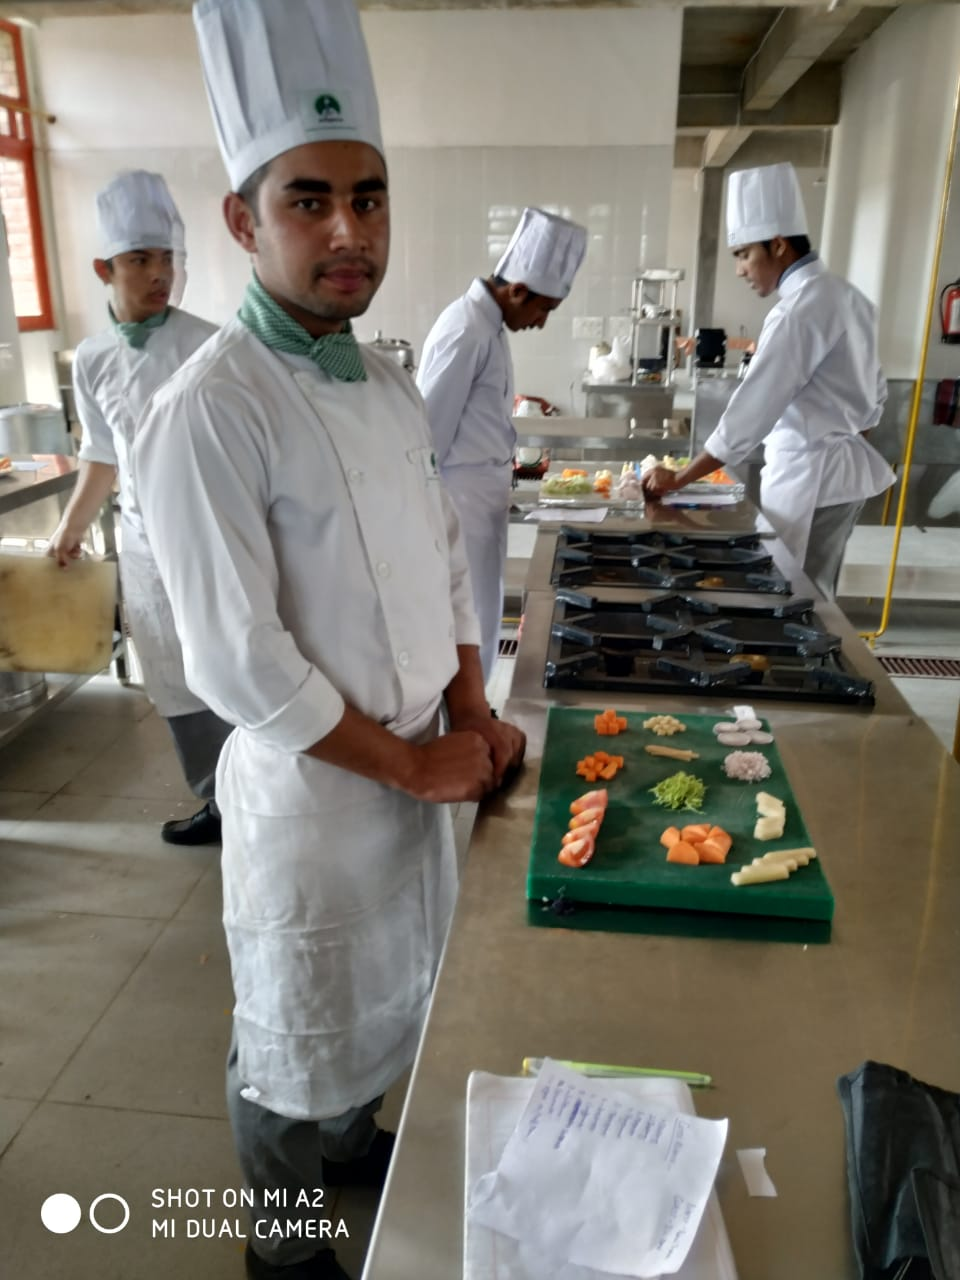 Allied – College of Hospitality Culinary Arts & Management